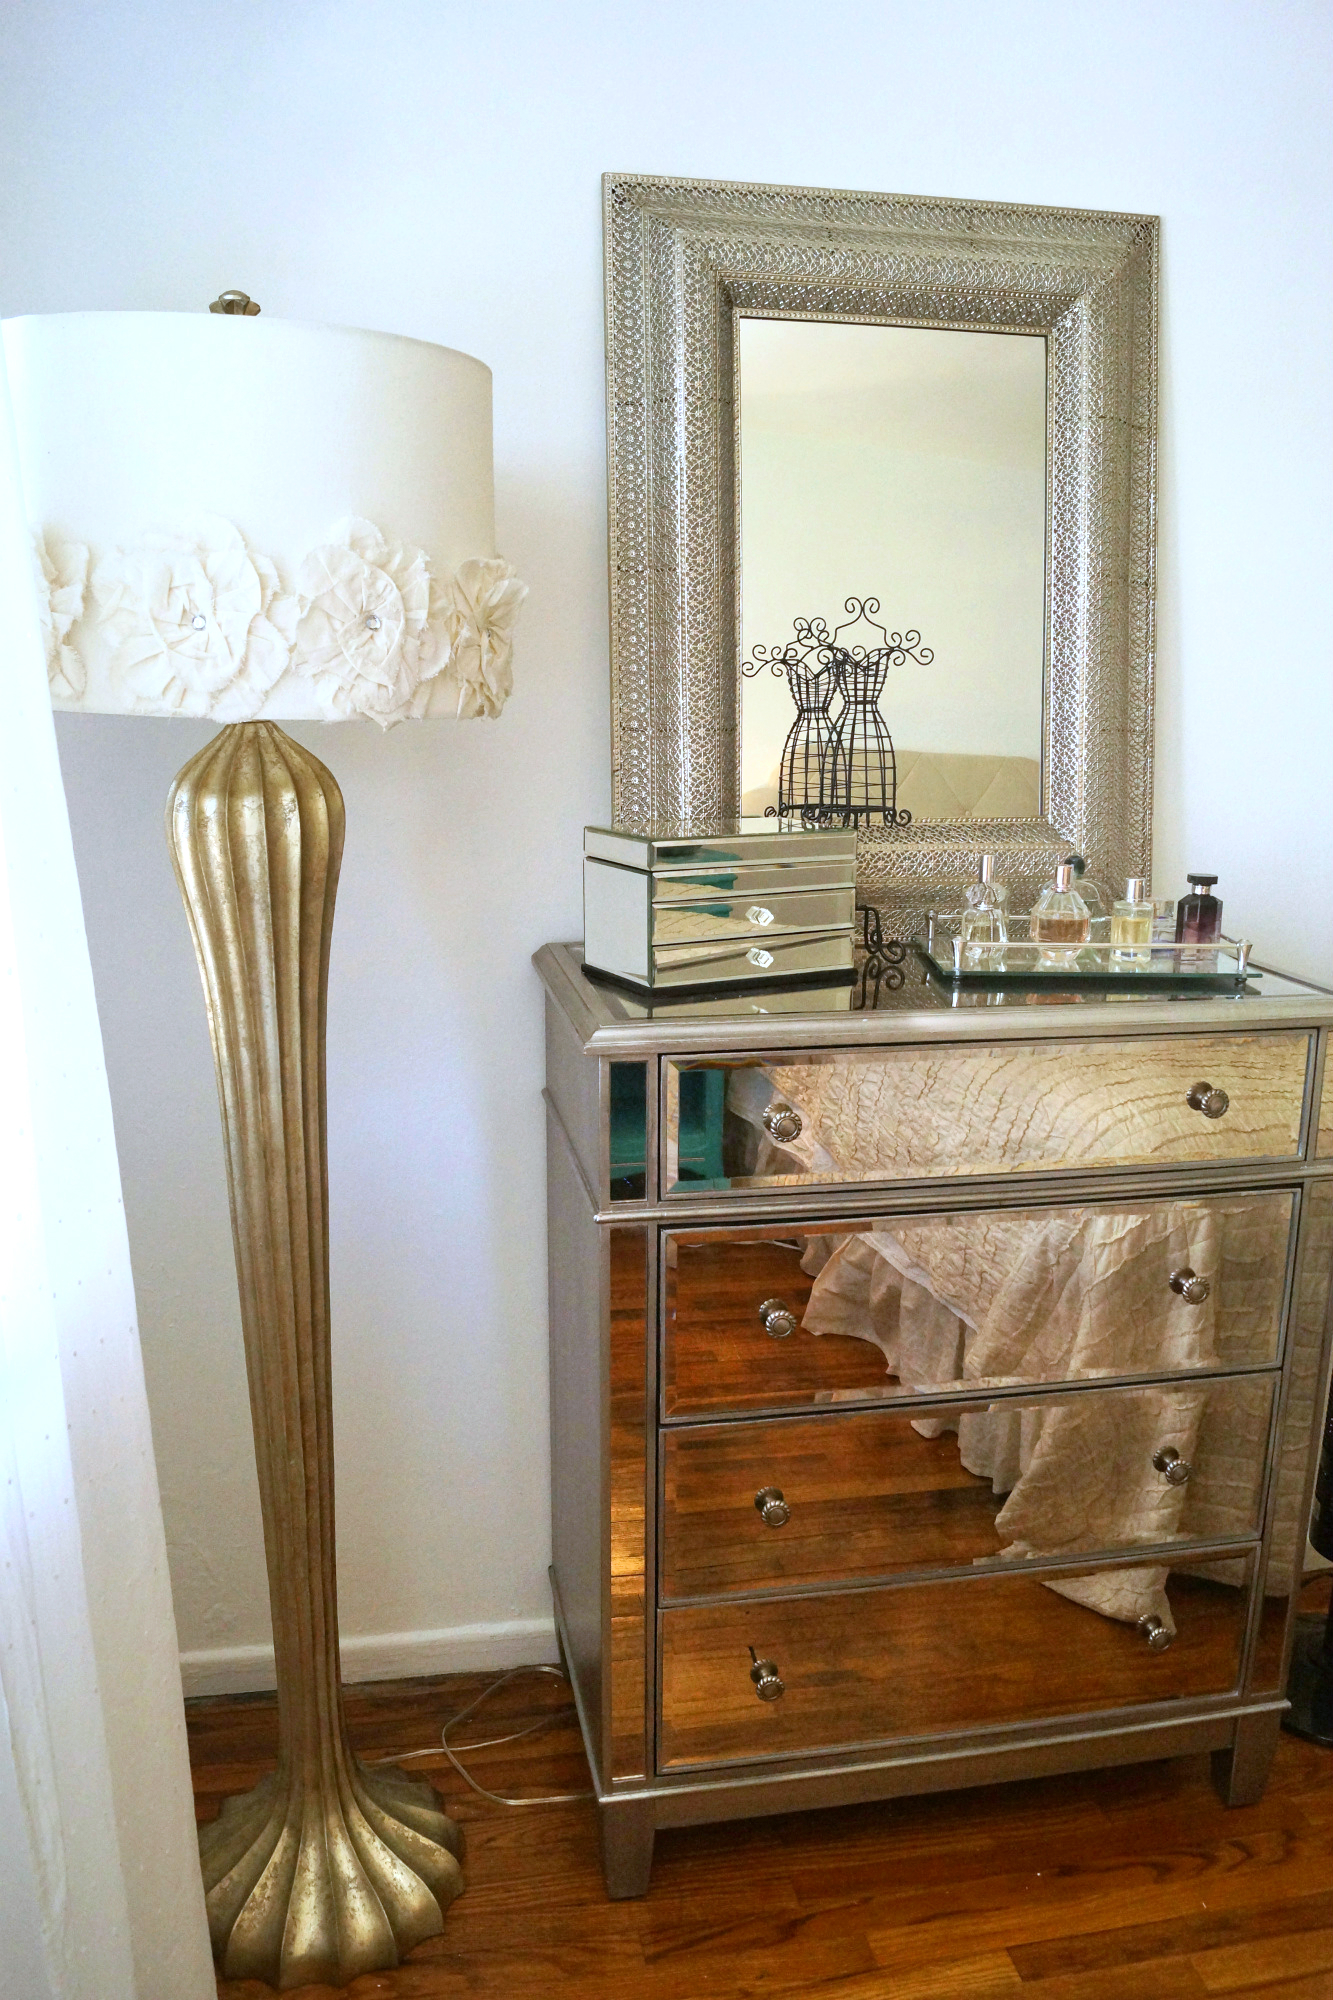 pier 1 mirrored bedroom furniture photo - 9